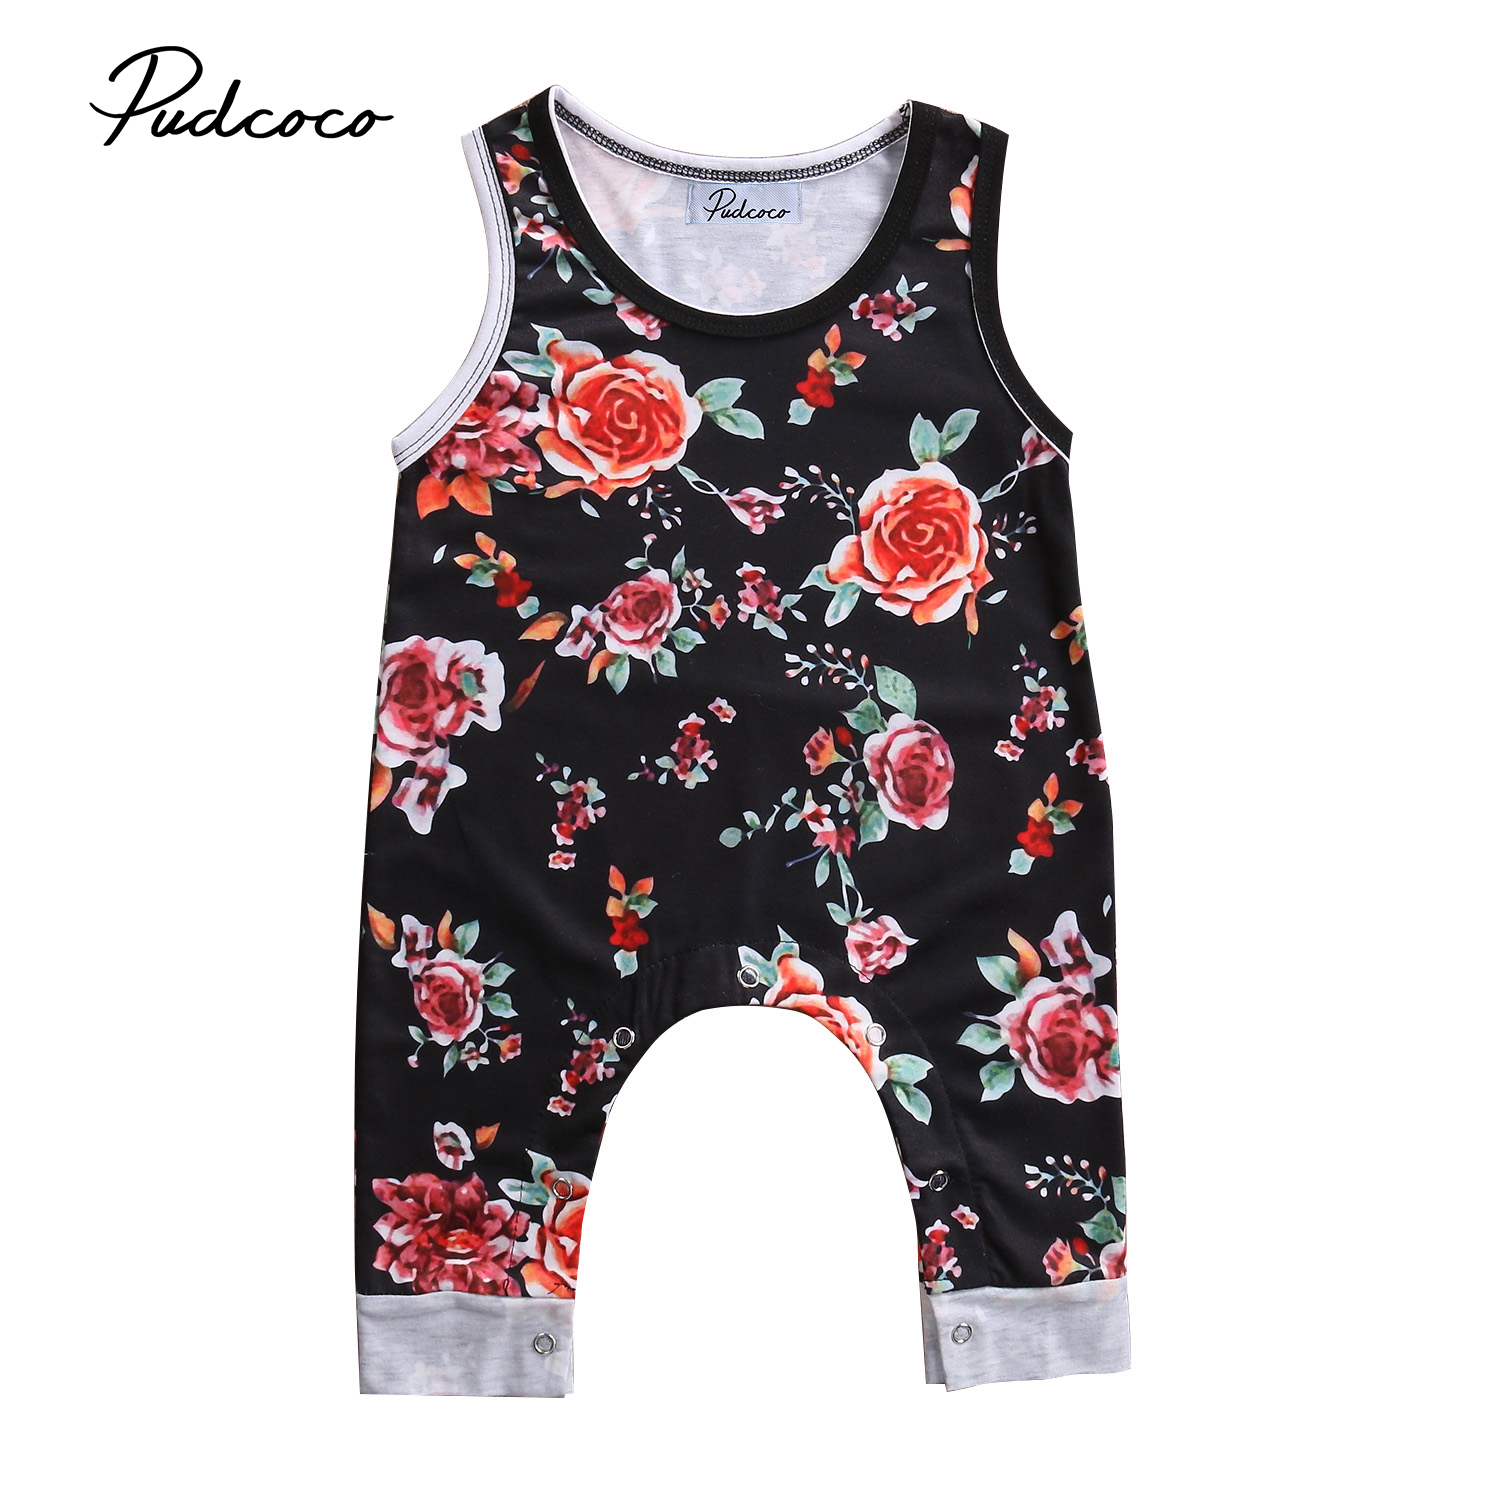 Newborn Infant Baby Girl cloth Floral sleeveless black Romper Jumpsuit Clothes Outfits Sunsuit DD135 ...